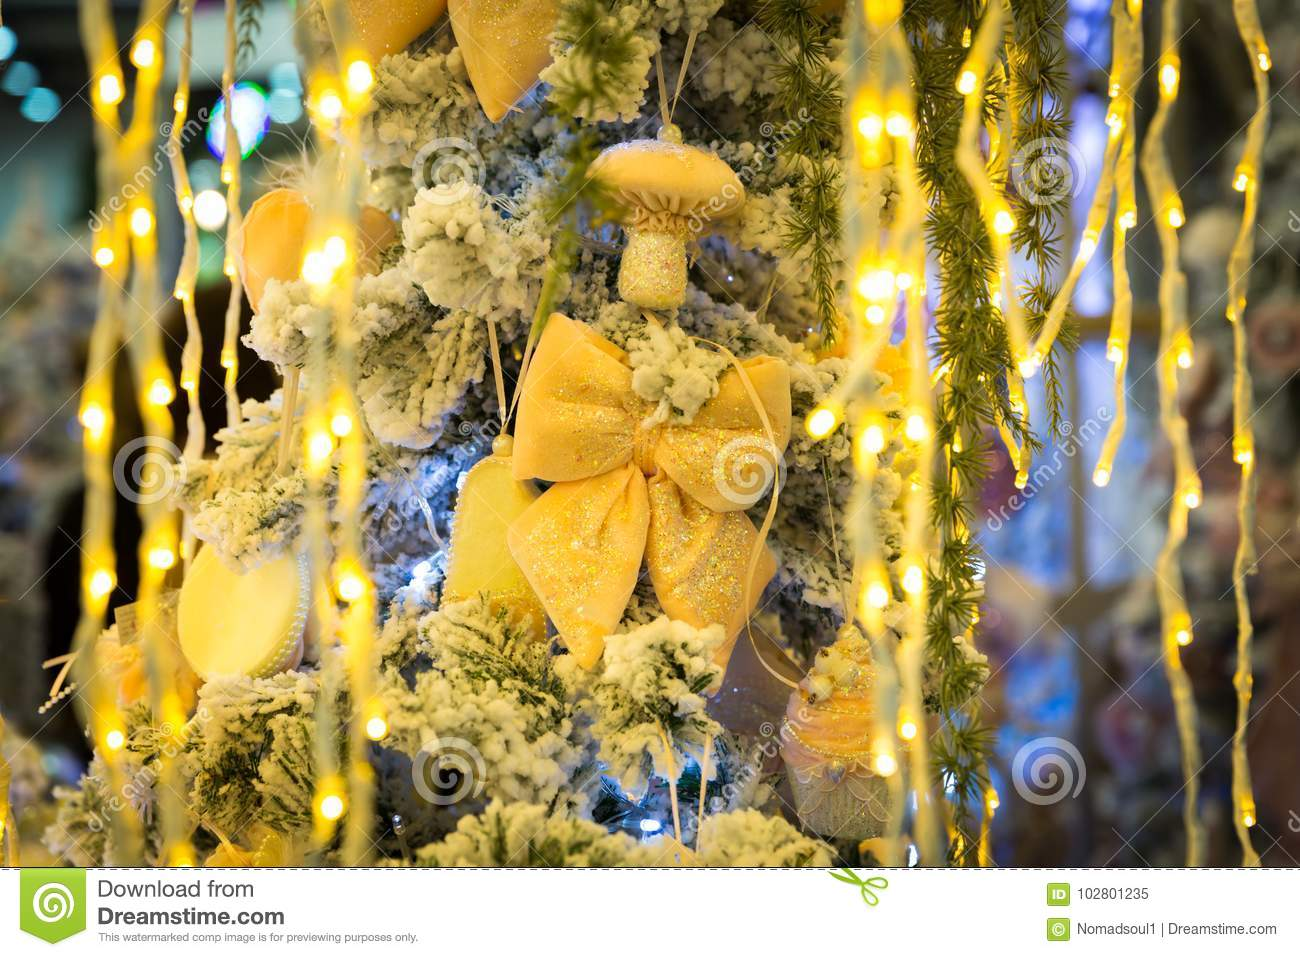 download christmas tree with yellow decor and lights stock image image of 2018 design